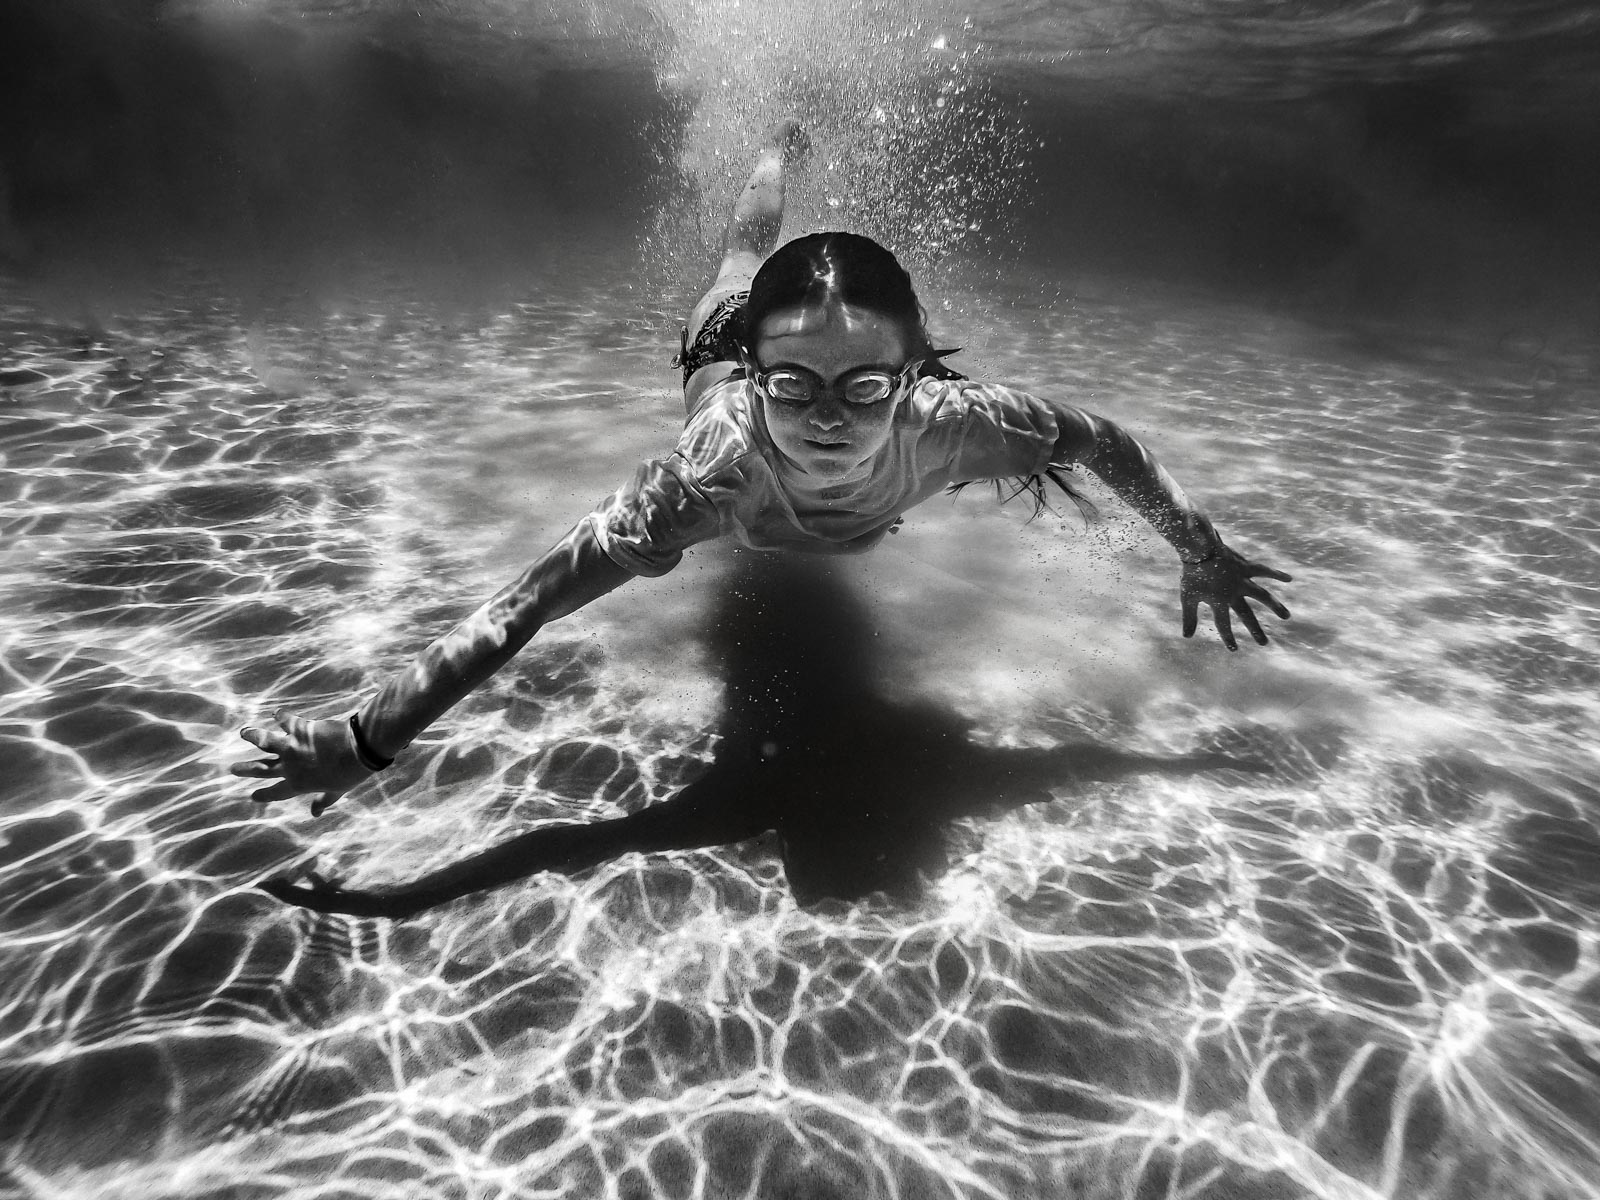 Summer black and white photo of a child swimming underwater